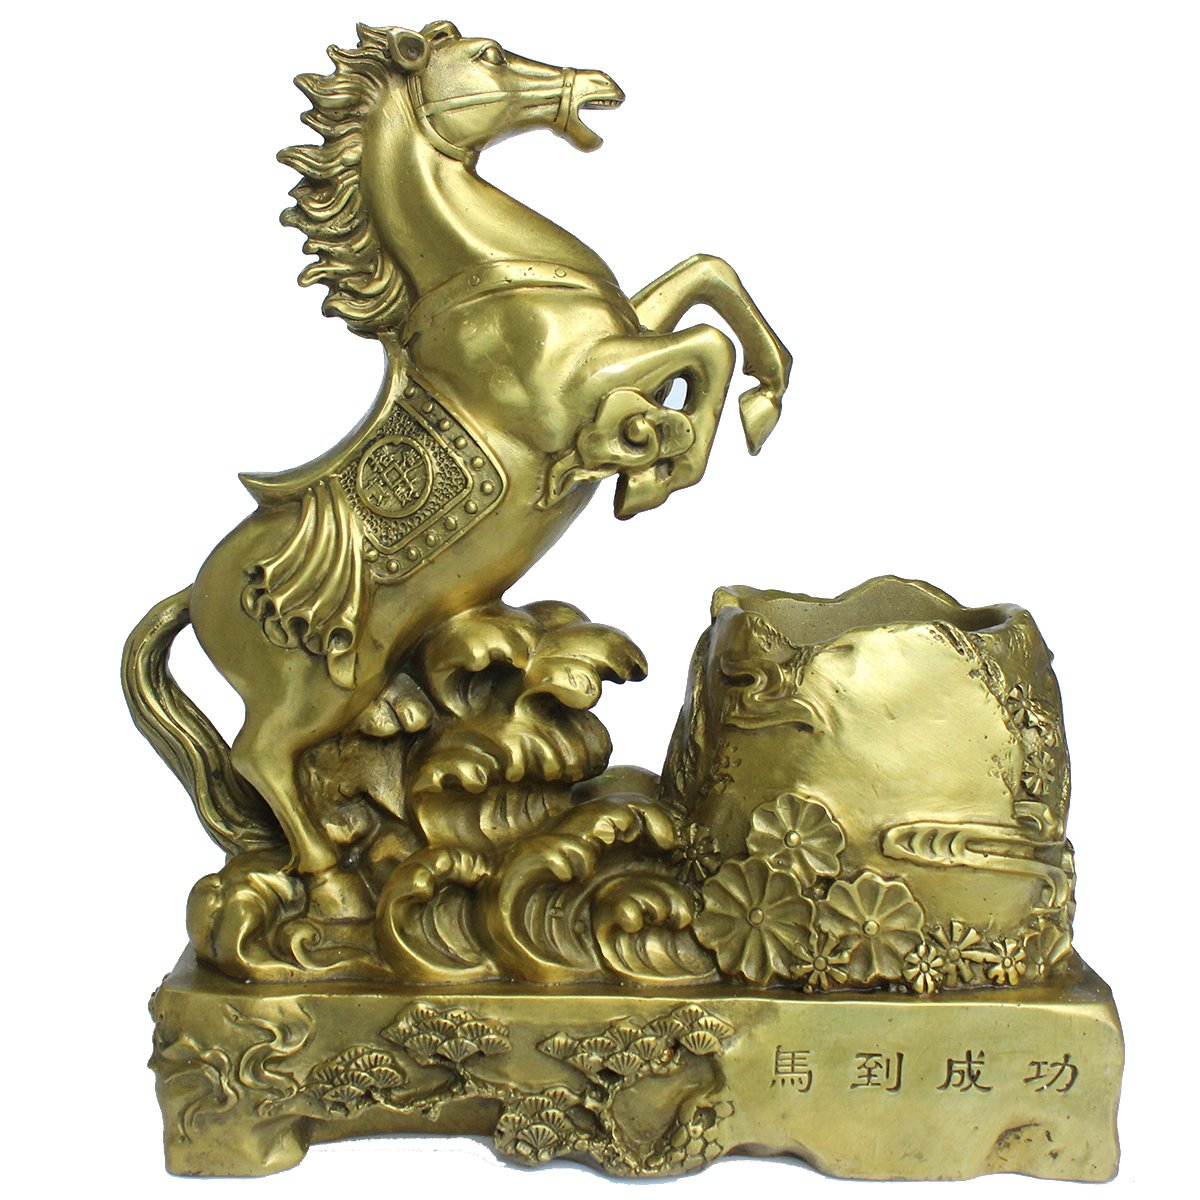 FENGSHUI Handmade Horse Attracting Success Collectible Statues Furnitures Desktop Decoration Gift - Achieve immediate victory